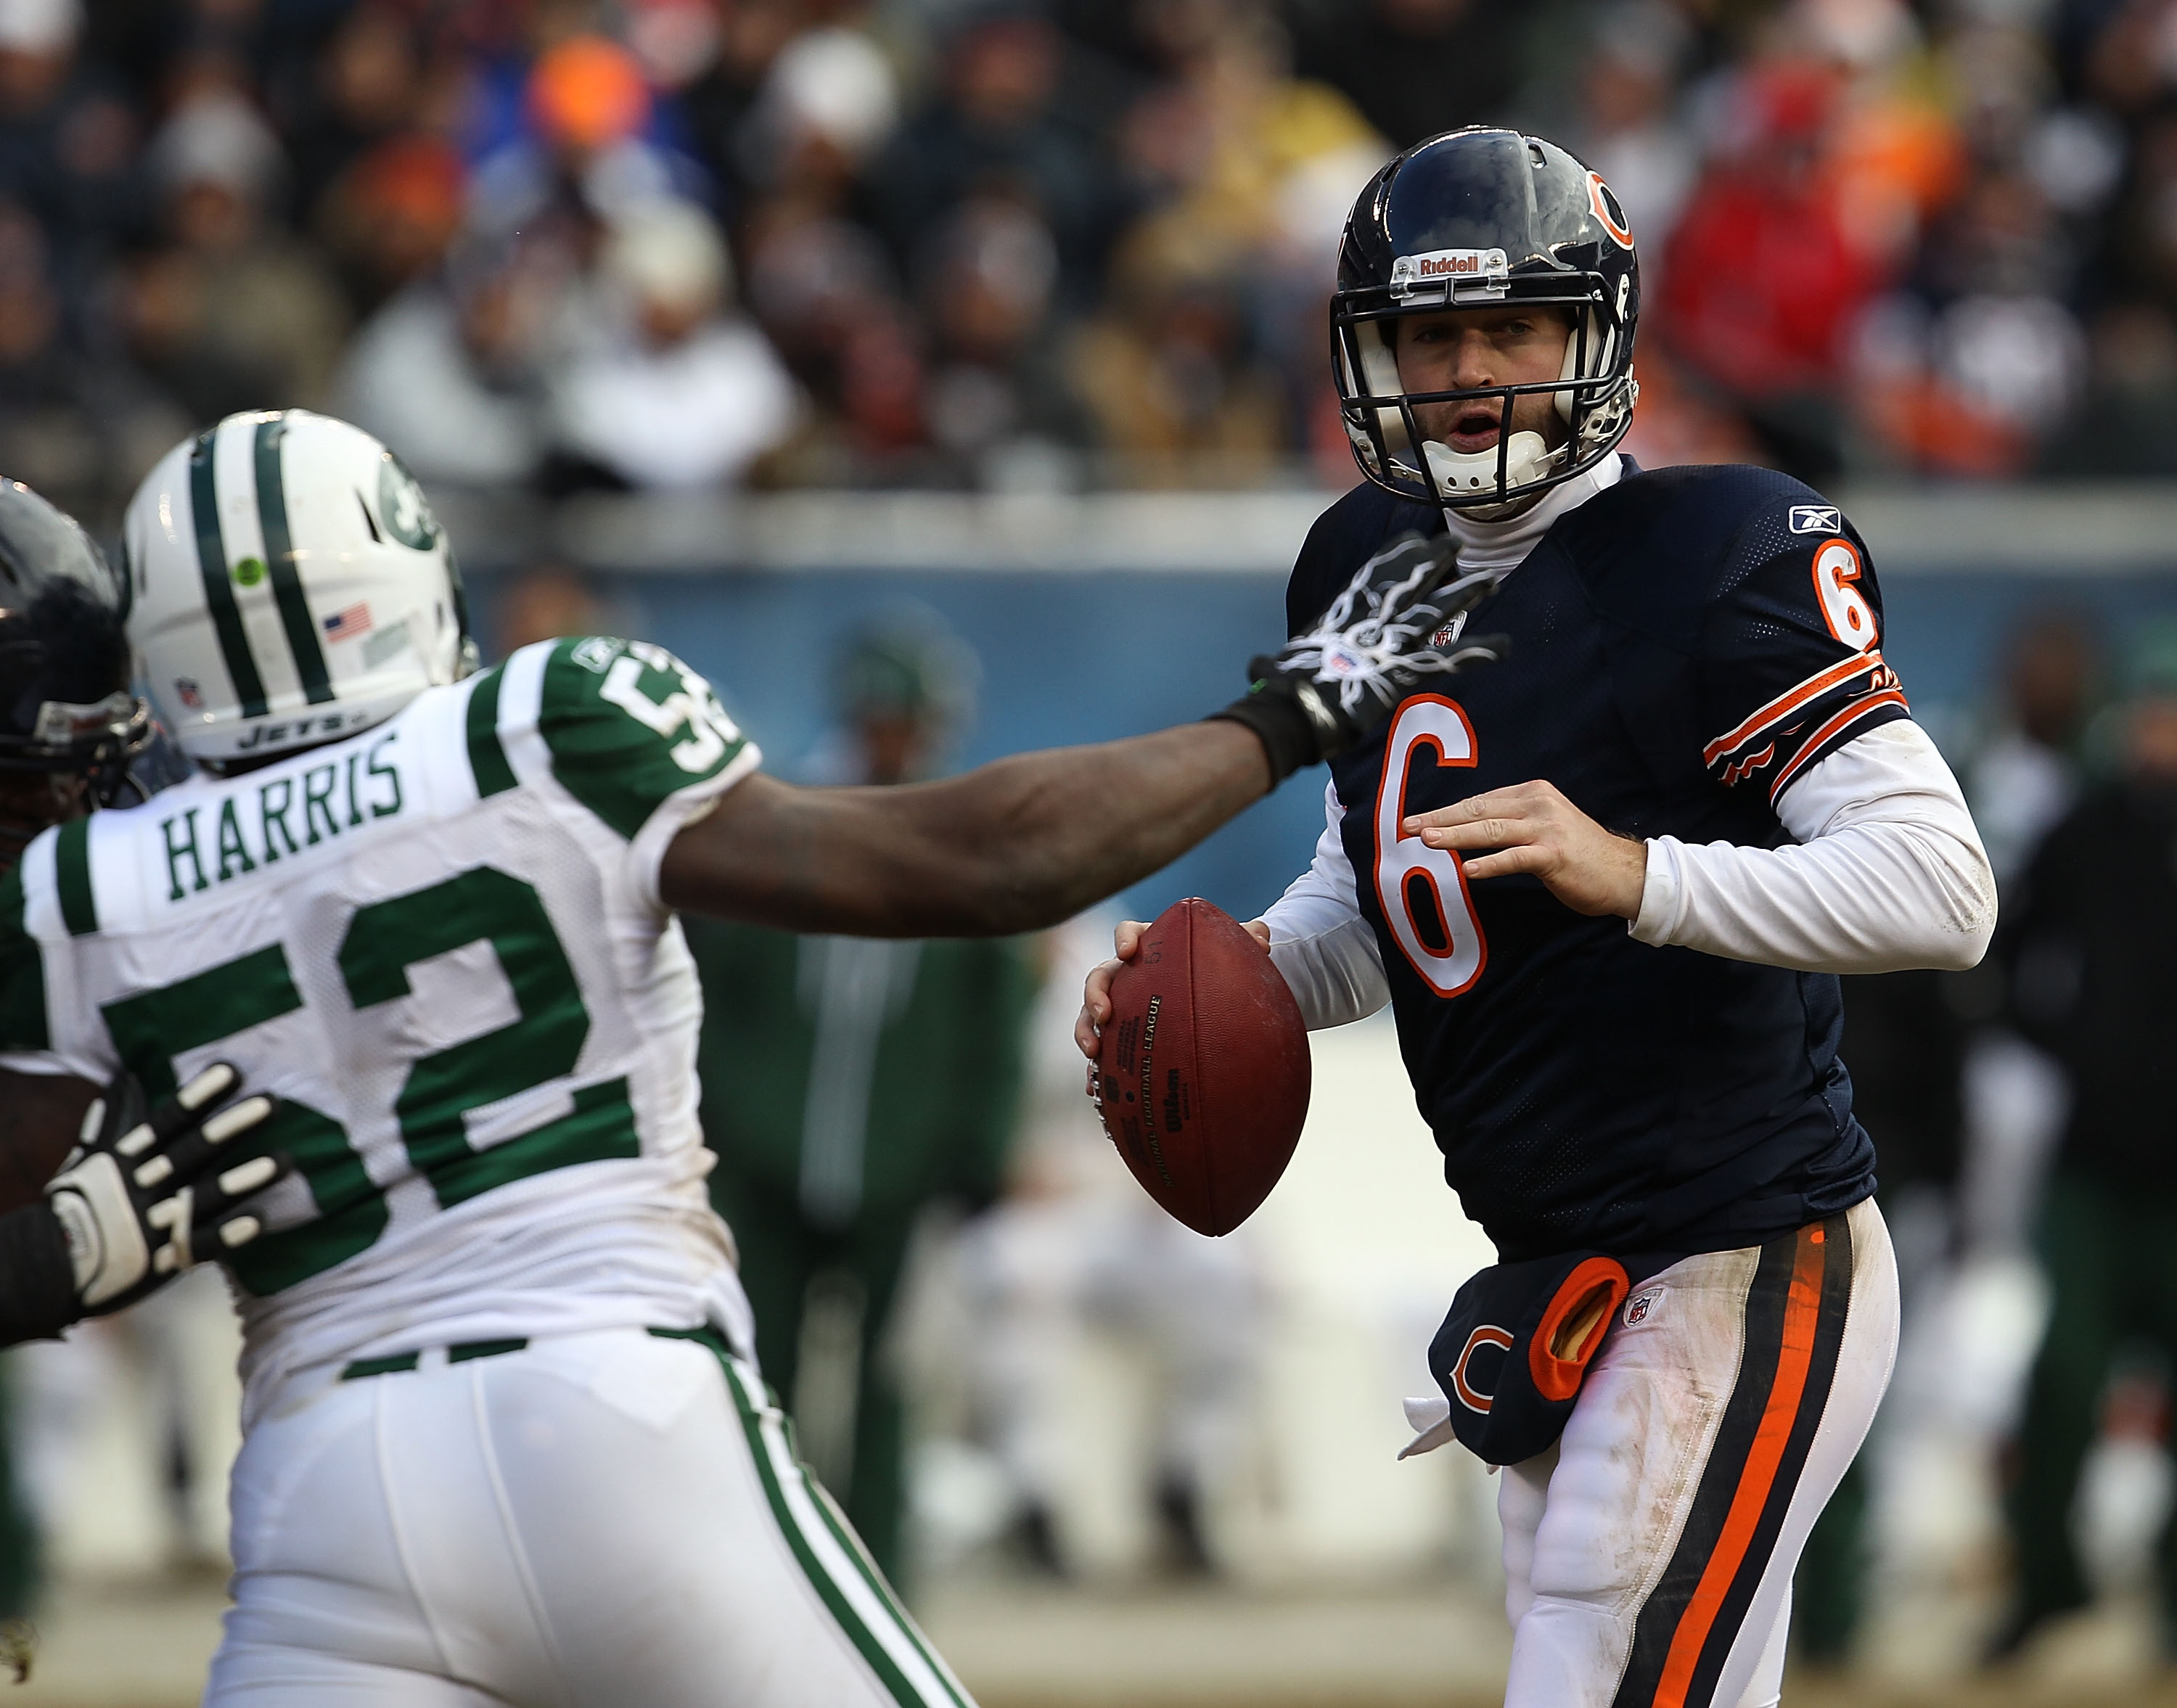 CHICAGO, IL - DECEMBER 26: Jay Cutler #6 of the Chicago Bears looks for a receiver as David Harris #52 of the New York Jets rushes at Soldier Field on December 26, 2010 in Chicago, Illinois. The Bears defeated the Jets 38-34. (Photo by Jonathan Daniel/Get